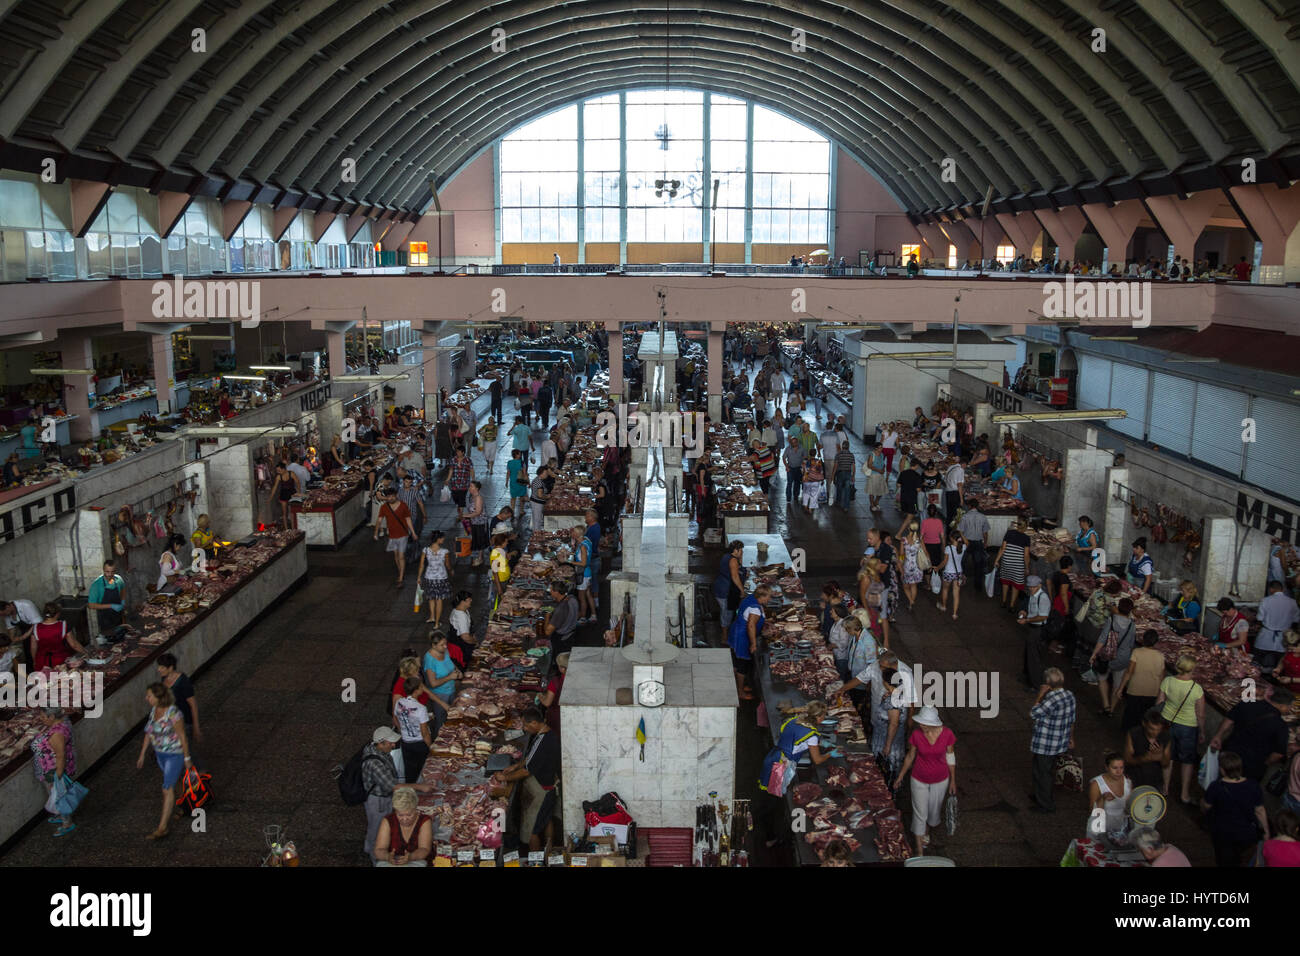 DNIPROPETROVSK, UKRAINE - AUGUST 15, 2015: Main hall of Dnipropetrovsk central market, the biggest green covered - Stock Image